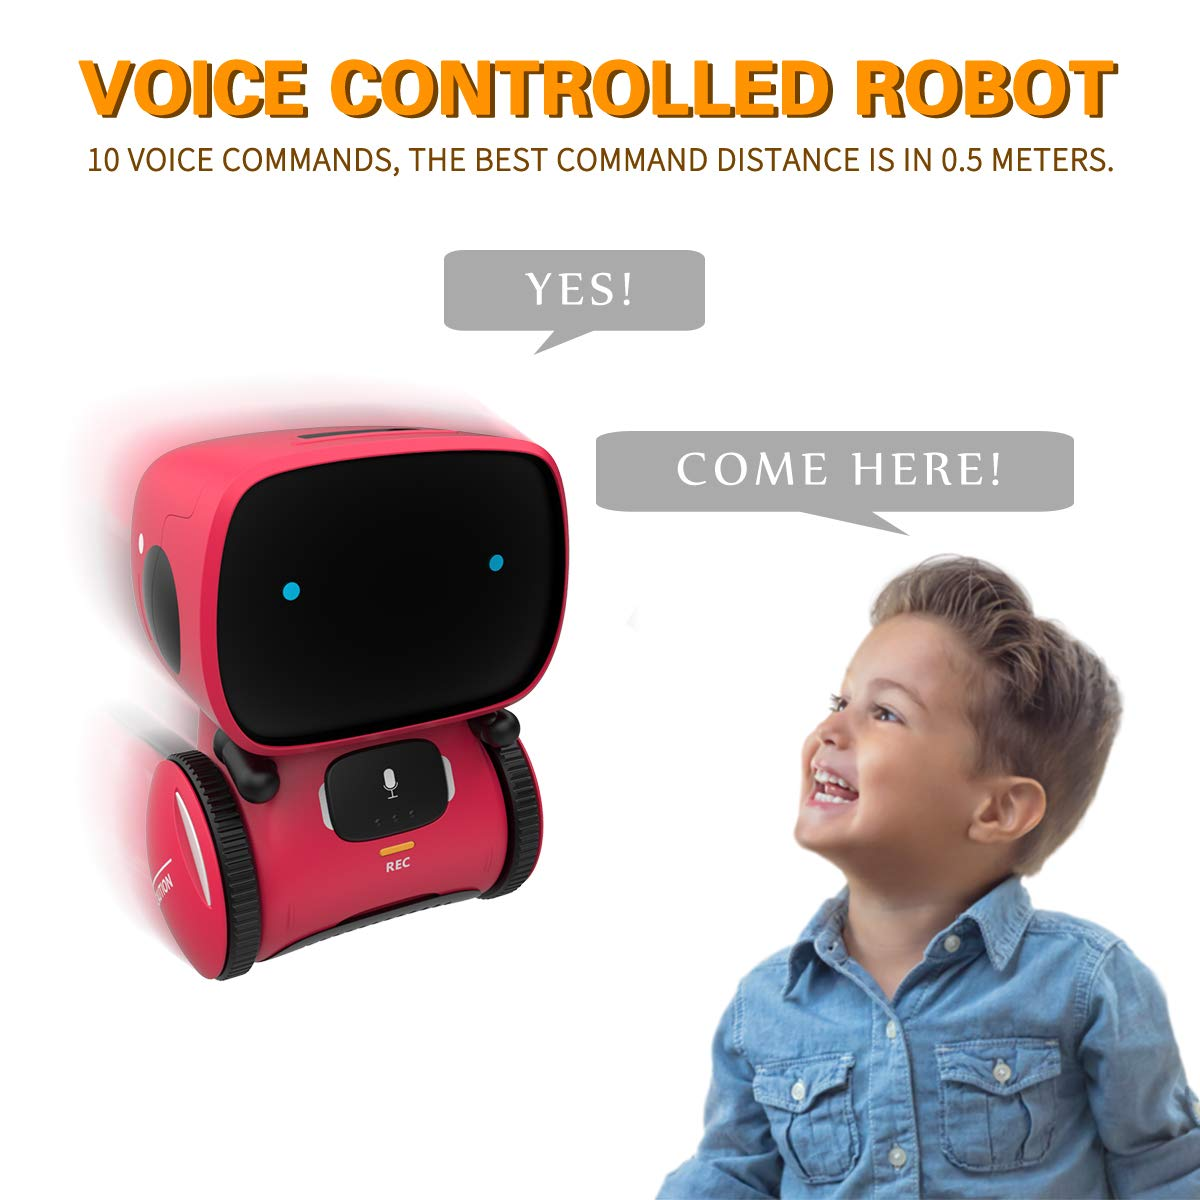 98K Kids Robot Toy, Smart Talking Robots, Gift for Boys and Girls Age 3+, Intelligent Partner and Teacher, with Voice Controlled and Touch Sensor, Singing, Dancing, Repeating by 98K (Image #3)